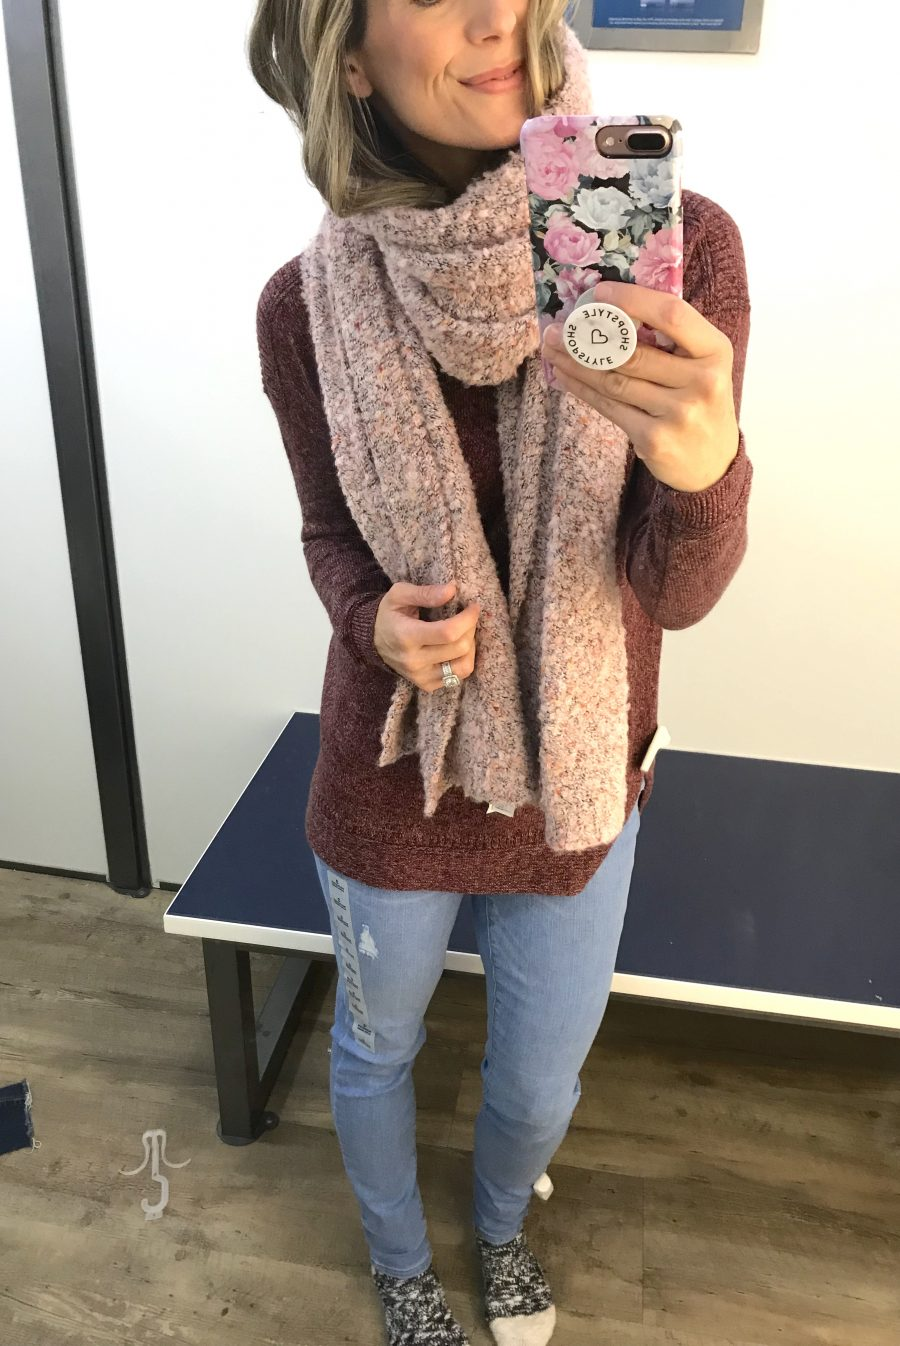 Boatneck tunic sweater, scarf, and denim